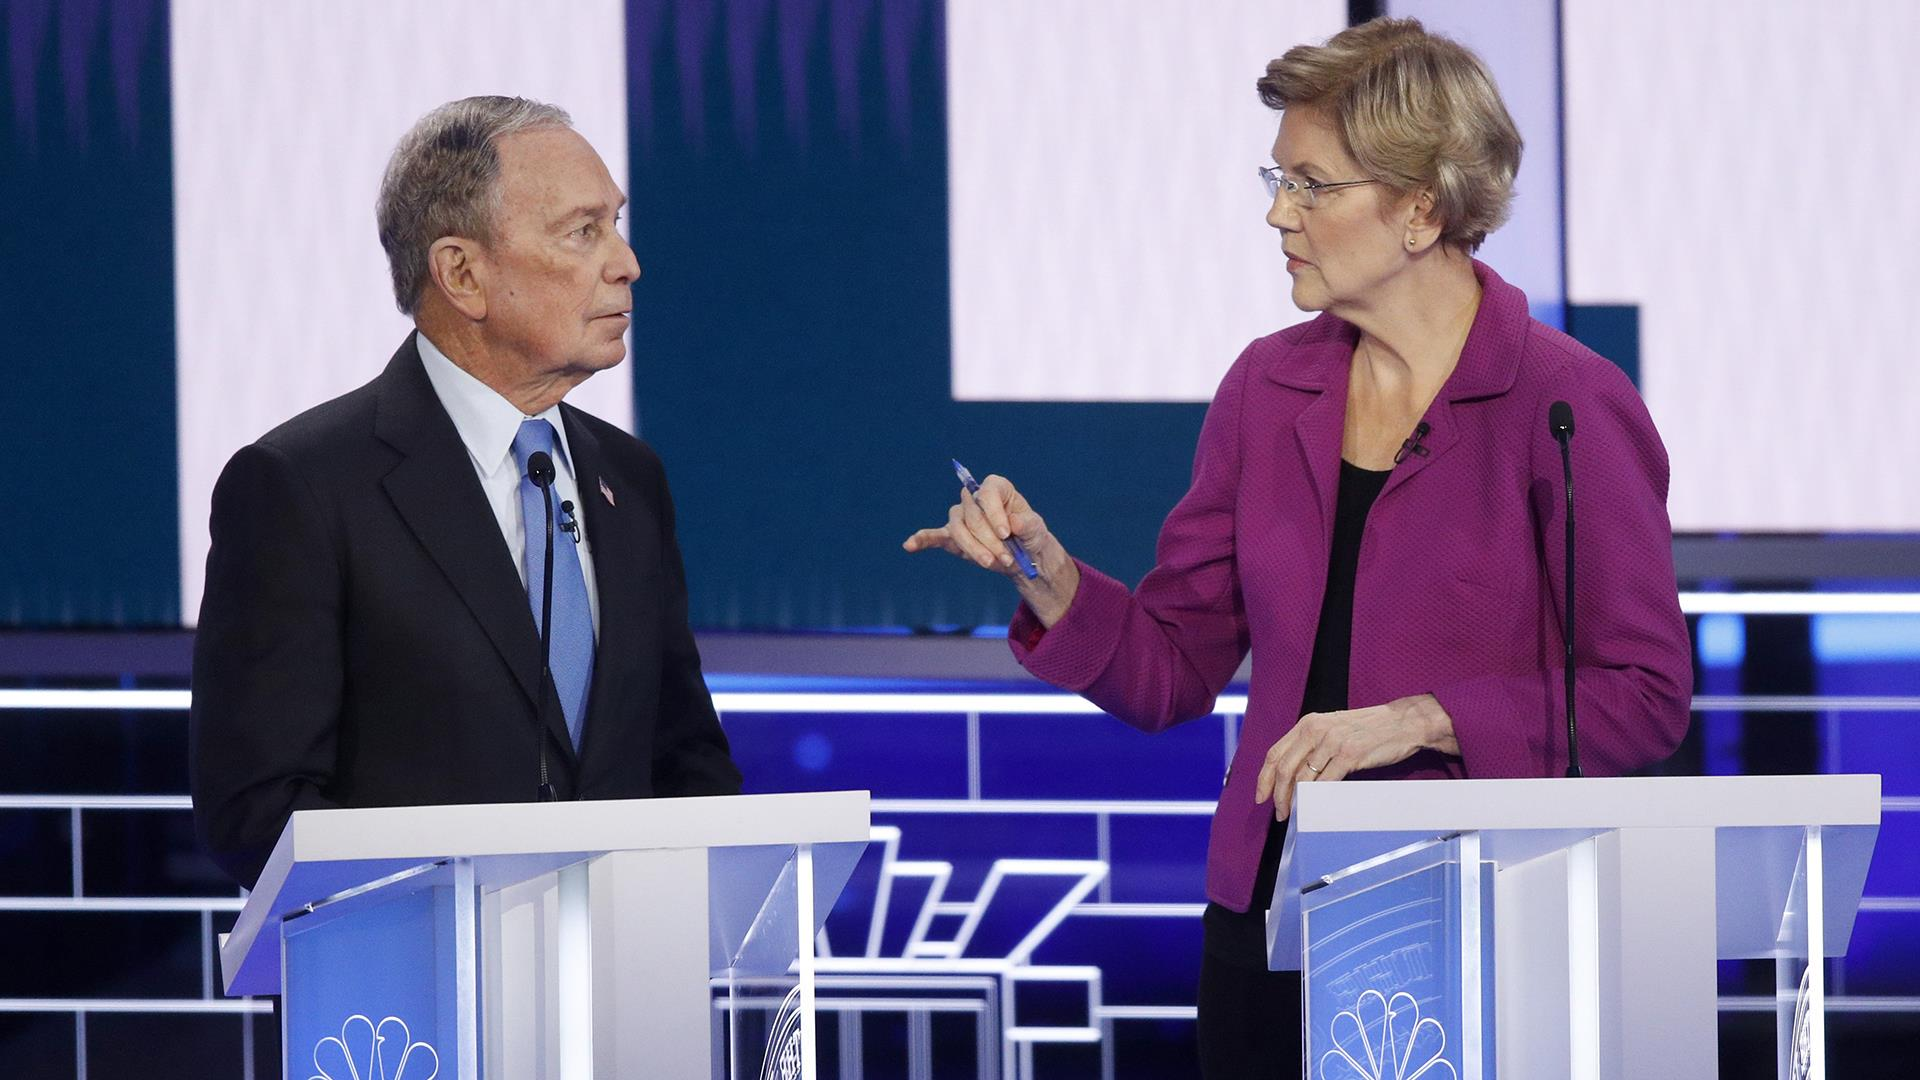 Bloomberg in fray as Democrats trade nonstop attacks at most contentious debate yet